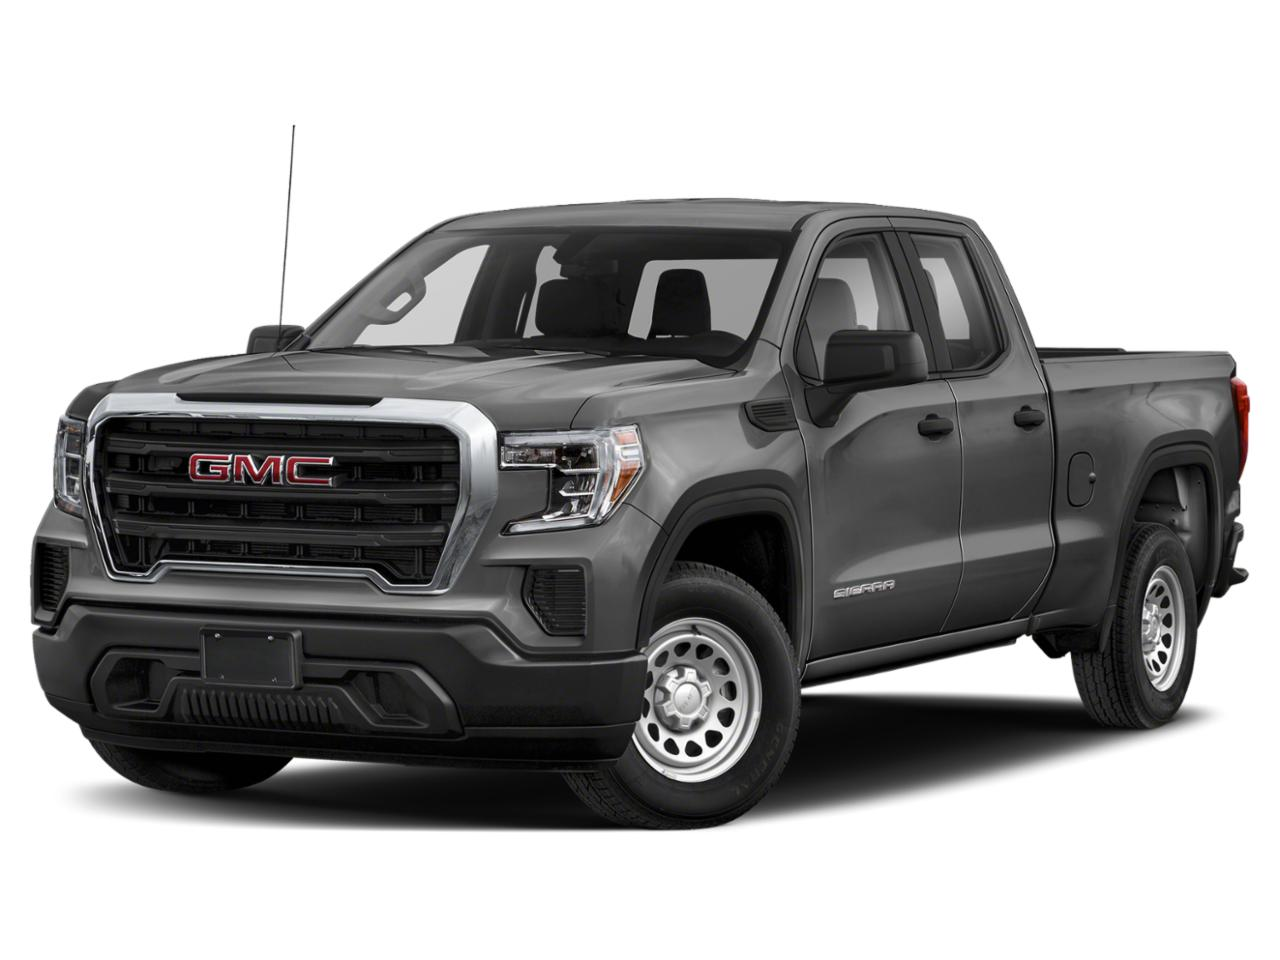 2021 GMC Sierra 1500 Vehicle Photo in Grand Rapids, MI 49512